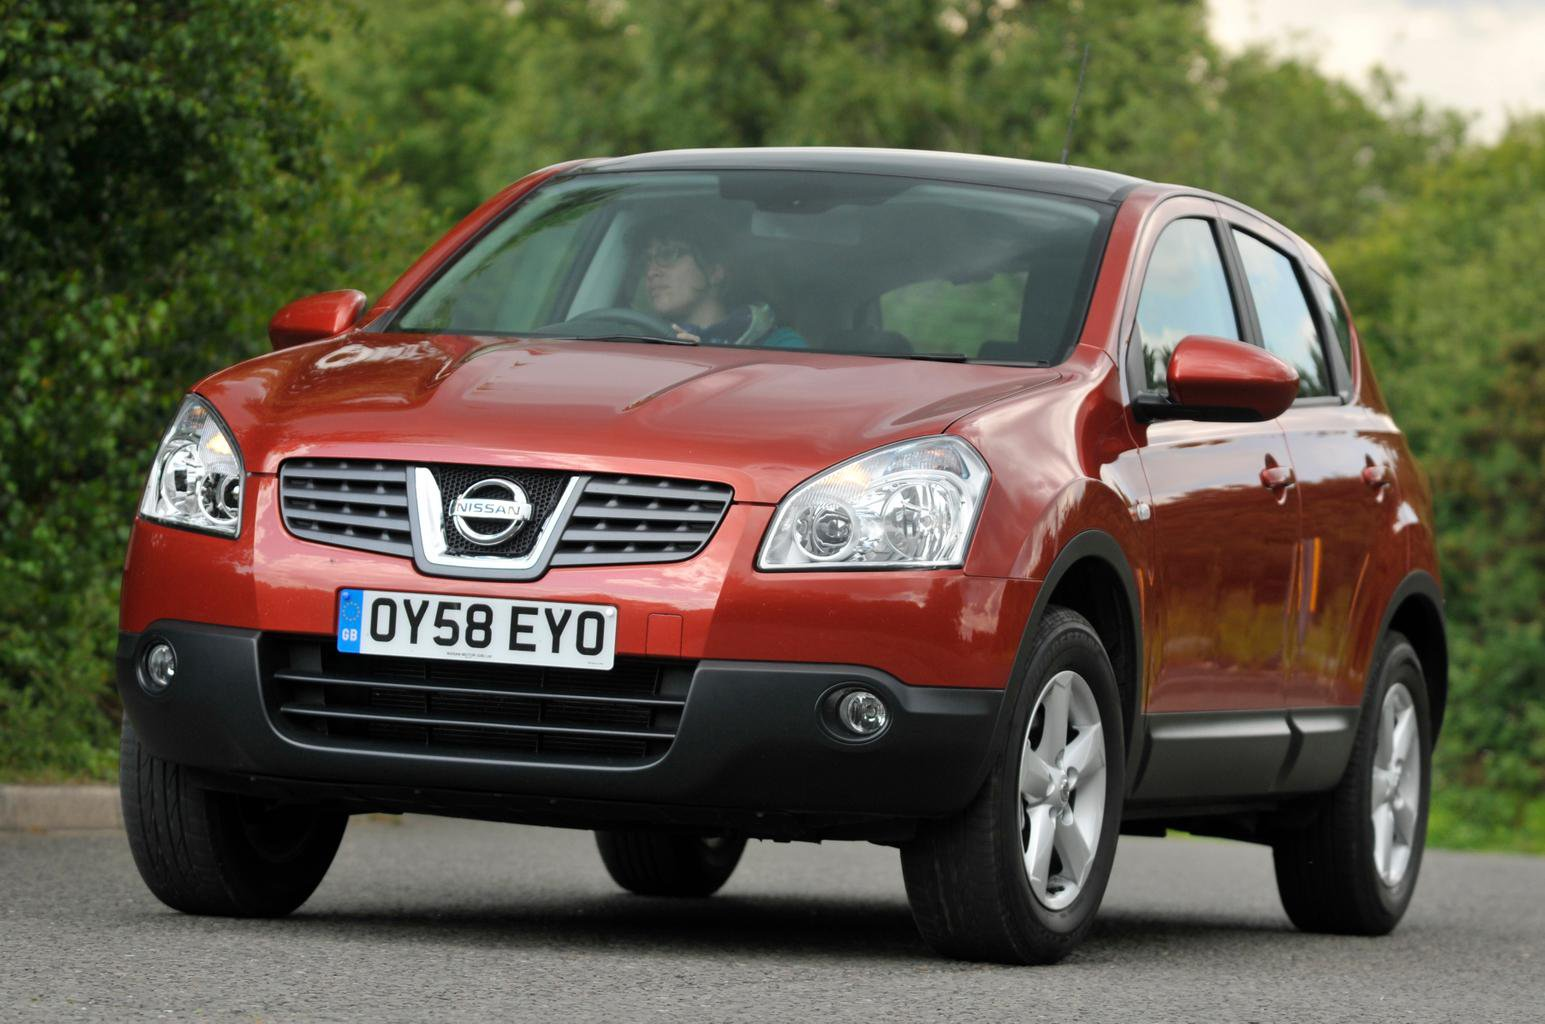 Used test: Peugeot 3008 vs Nissan Qashqai